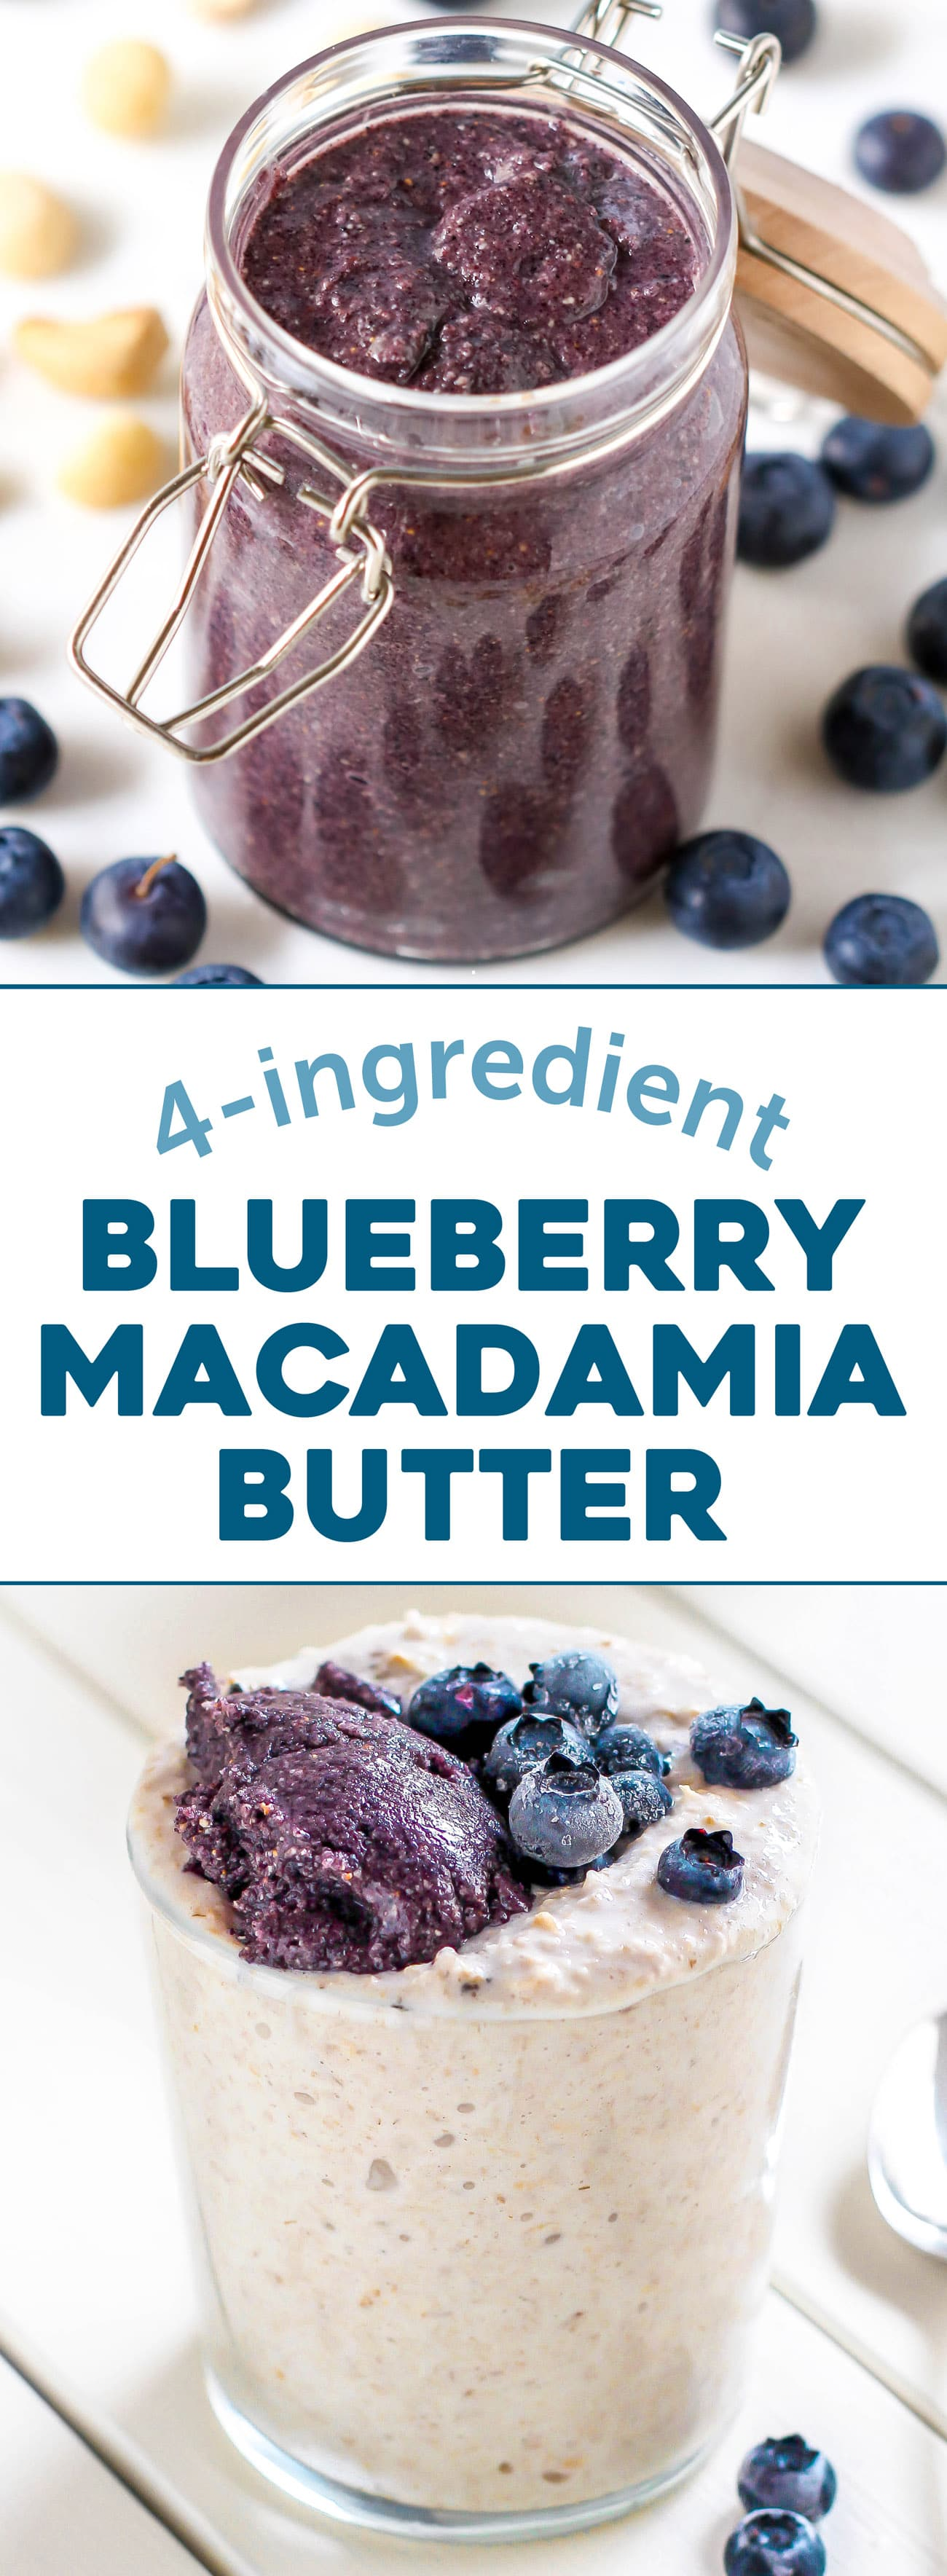 Easy healthy 4-ingredient Blueberry Macadamia Butter